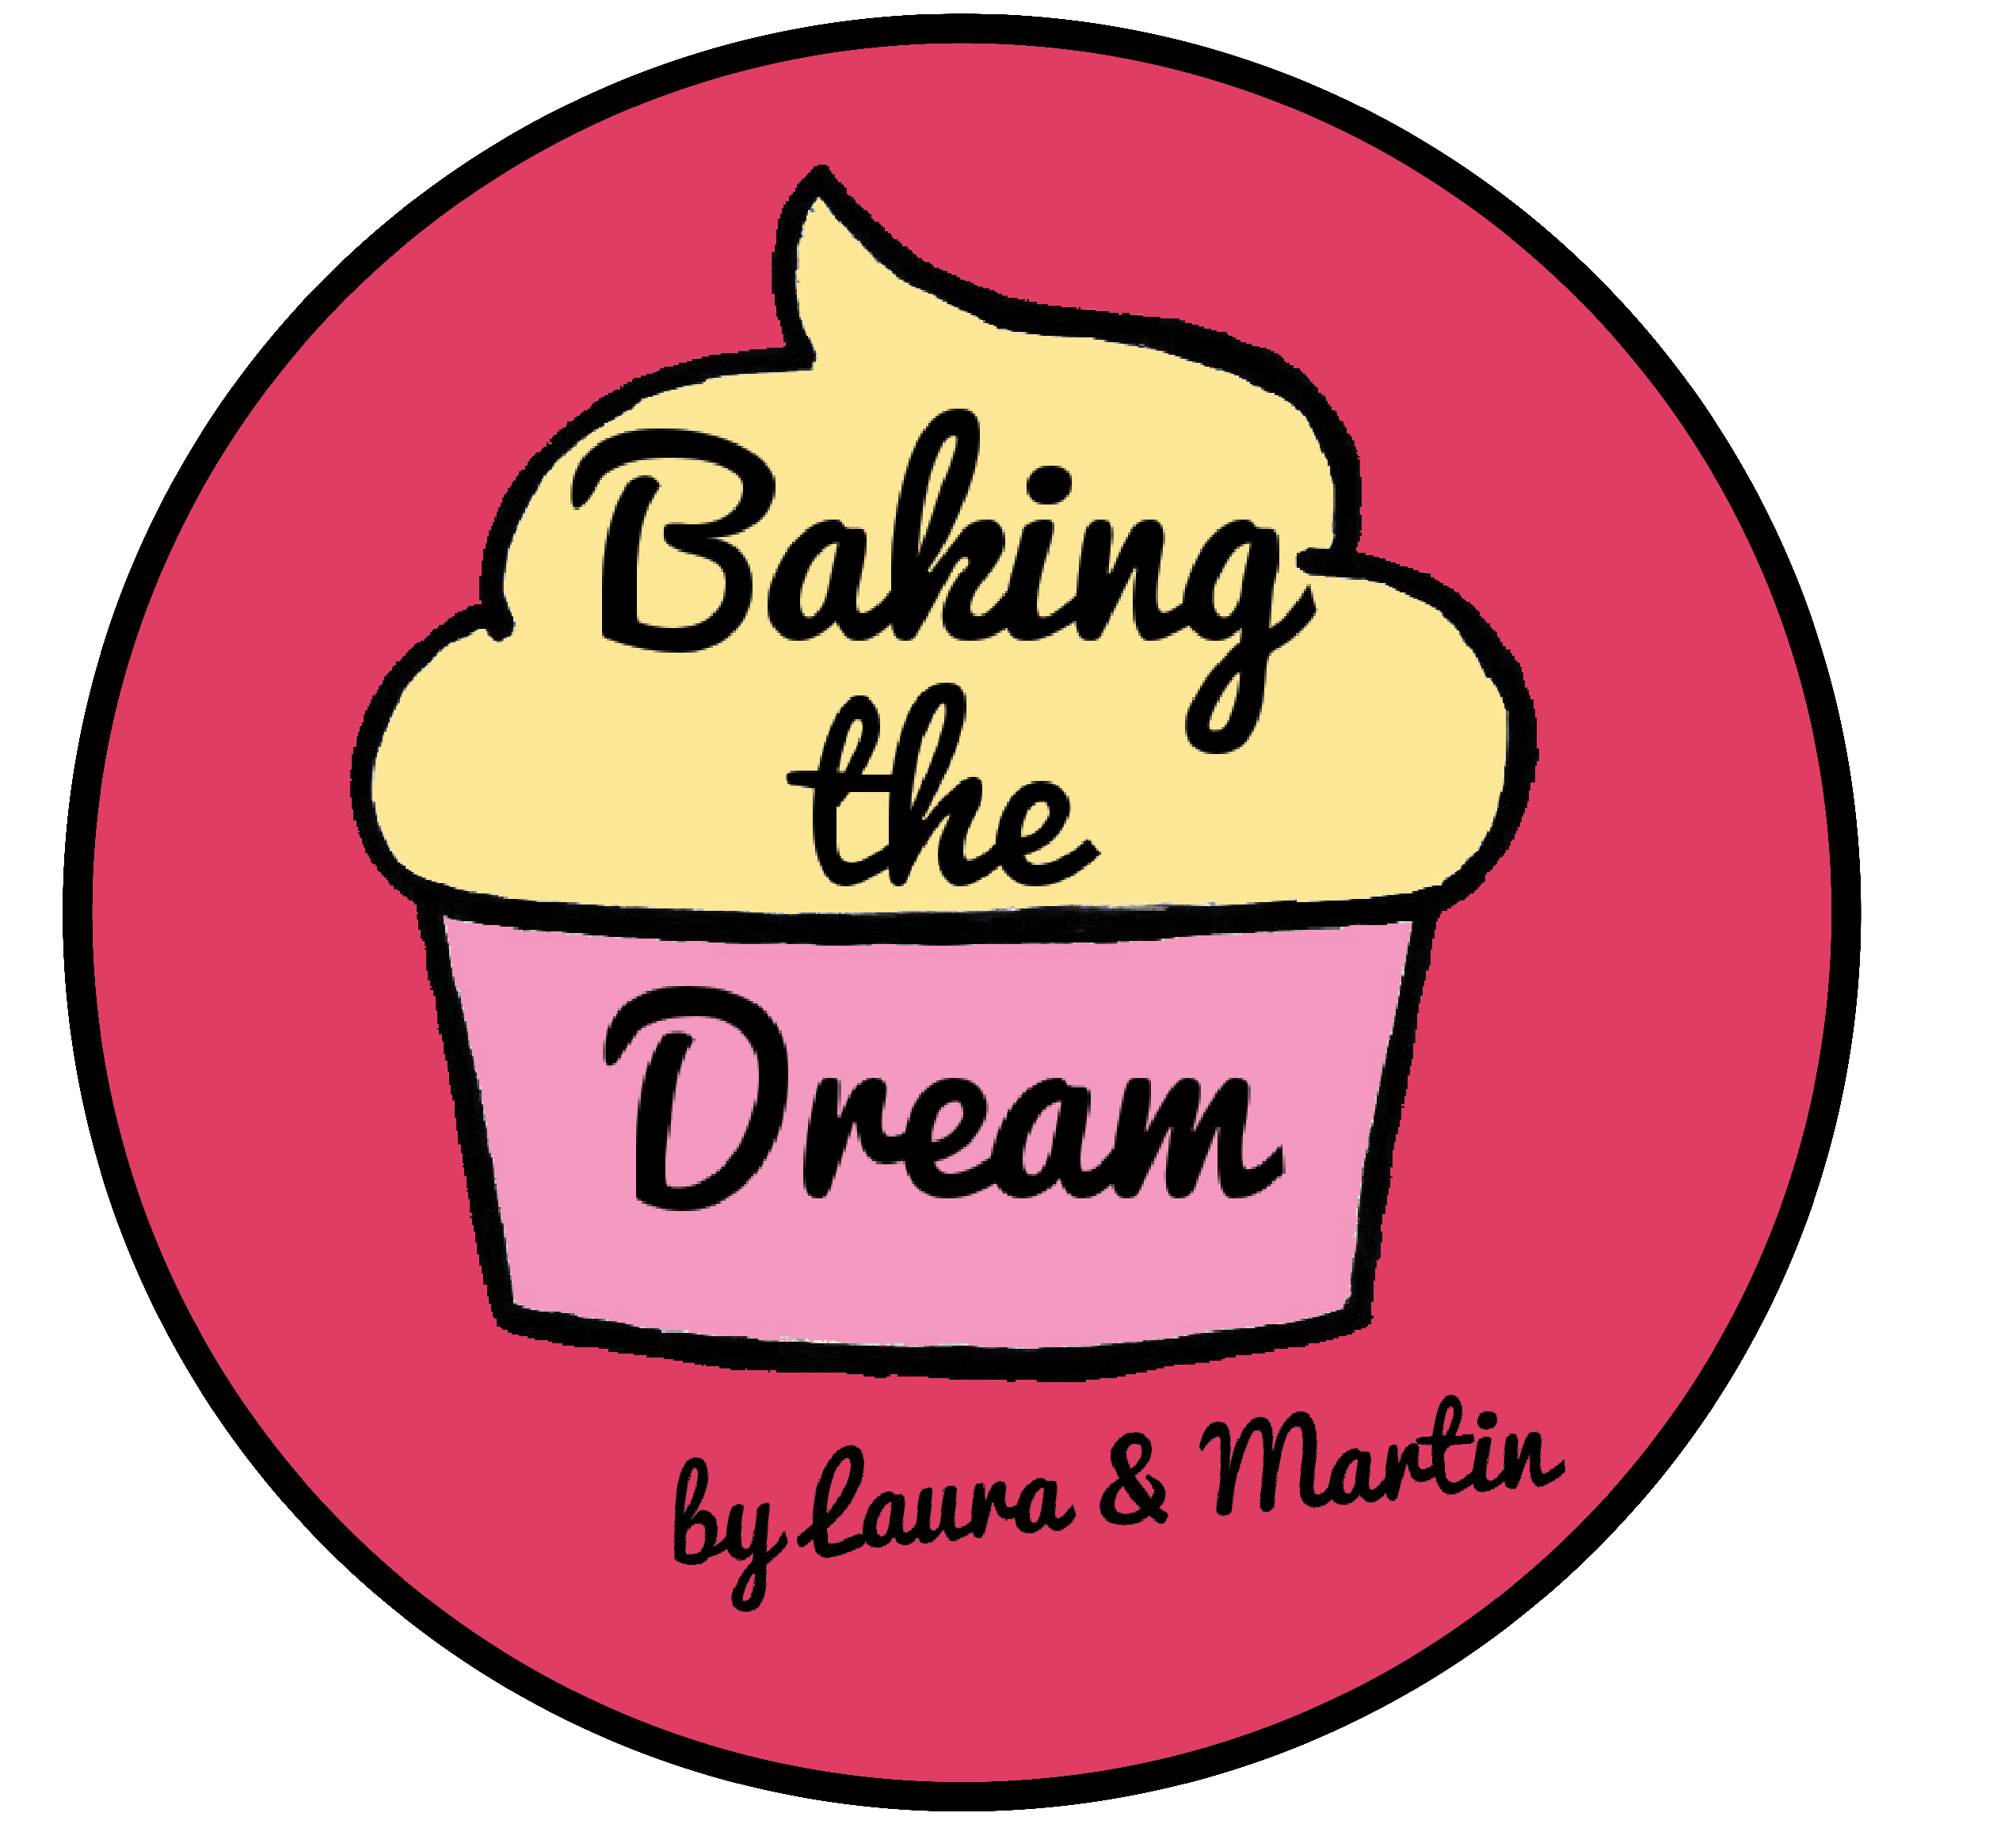 Baking the Dream